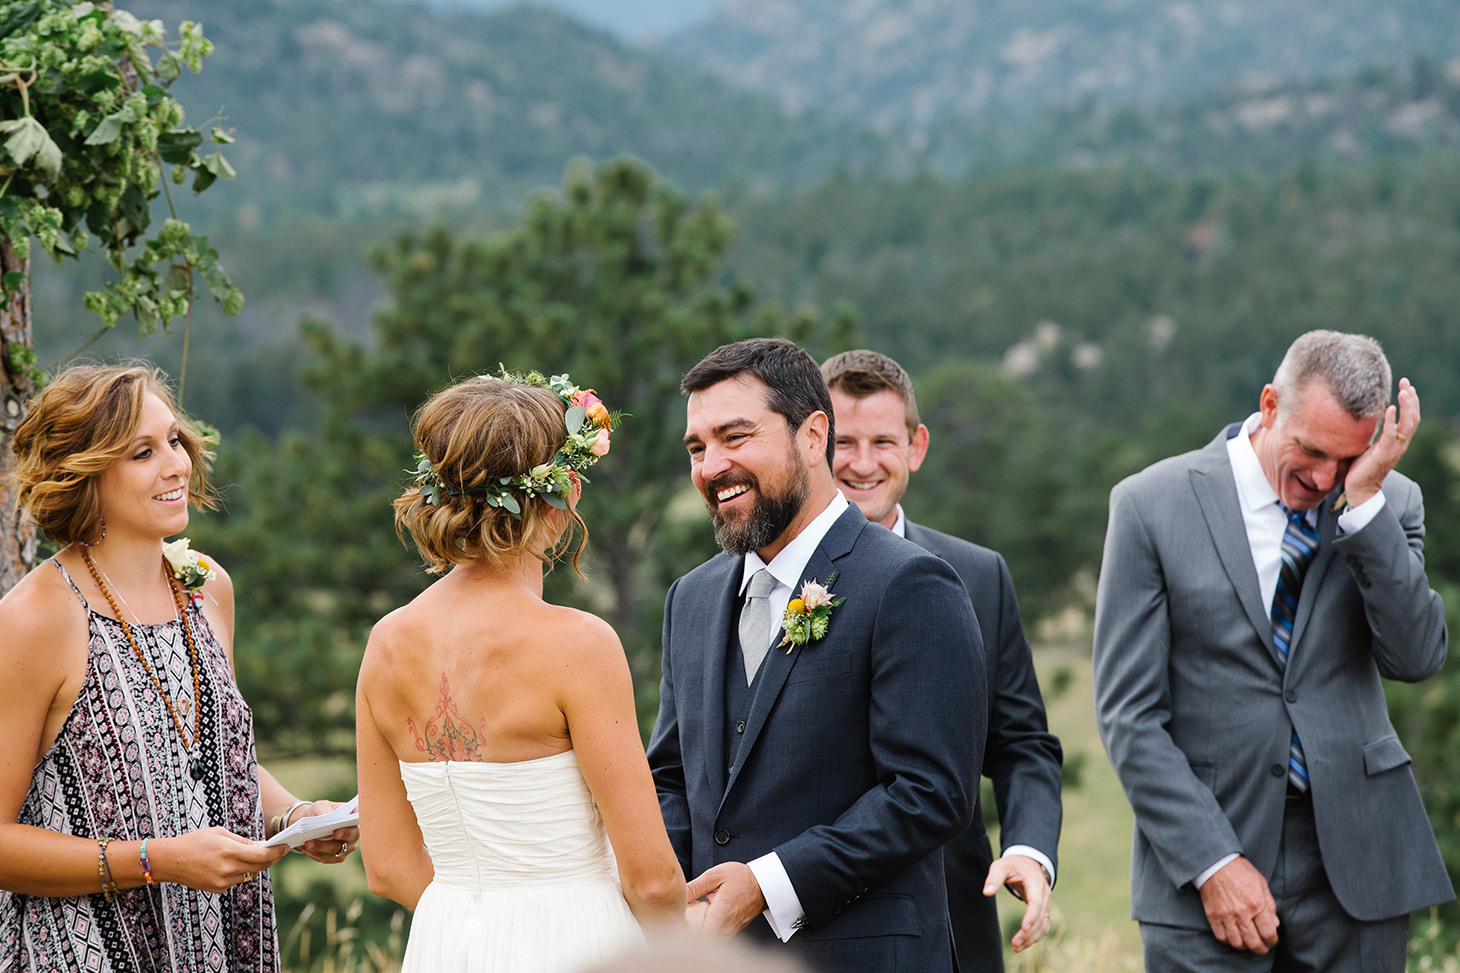 Megan-Newton-Photography-Best-Wedding-Photos-2015-109